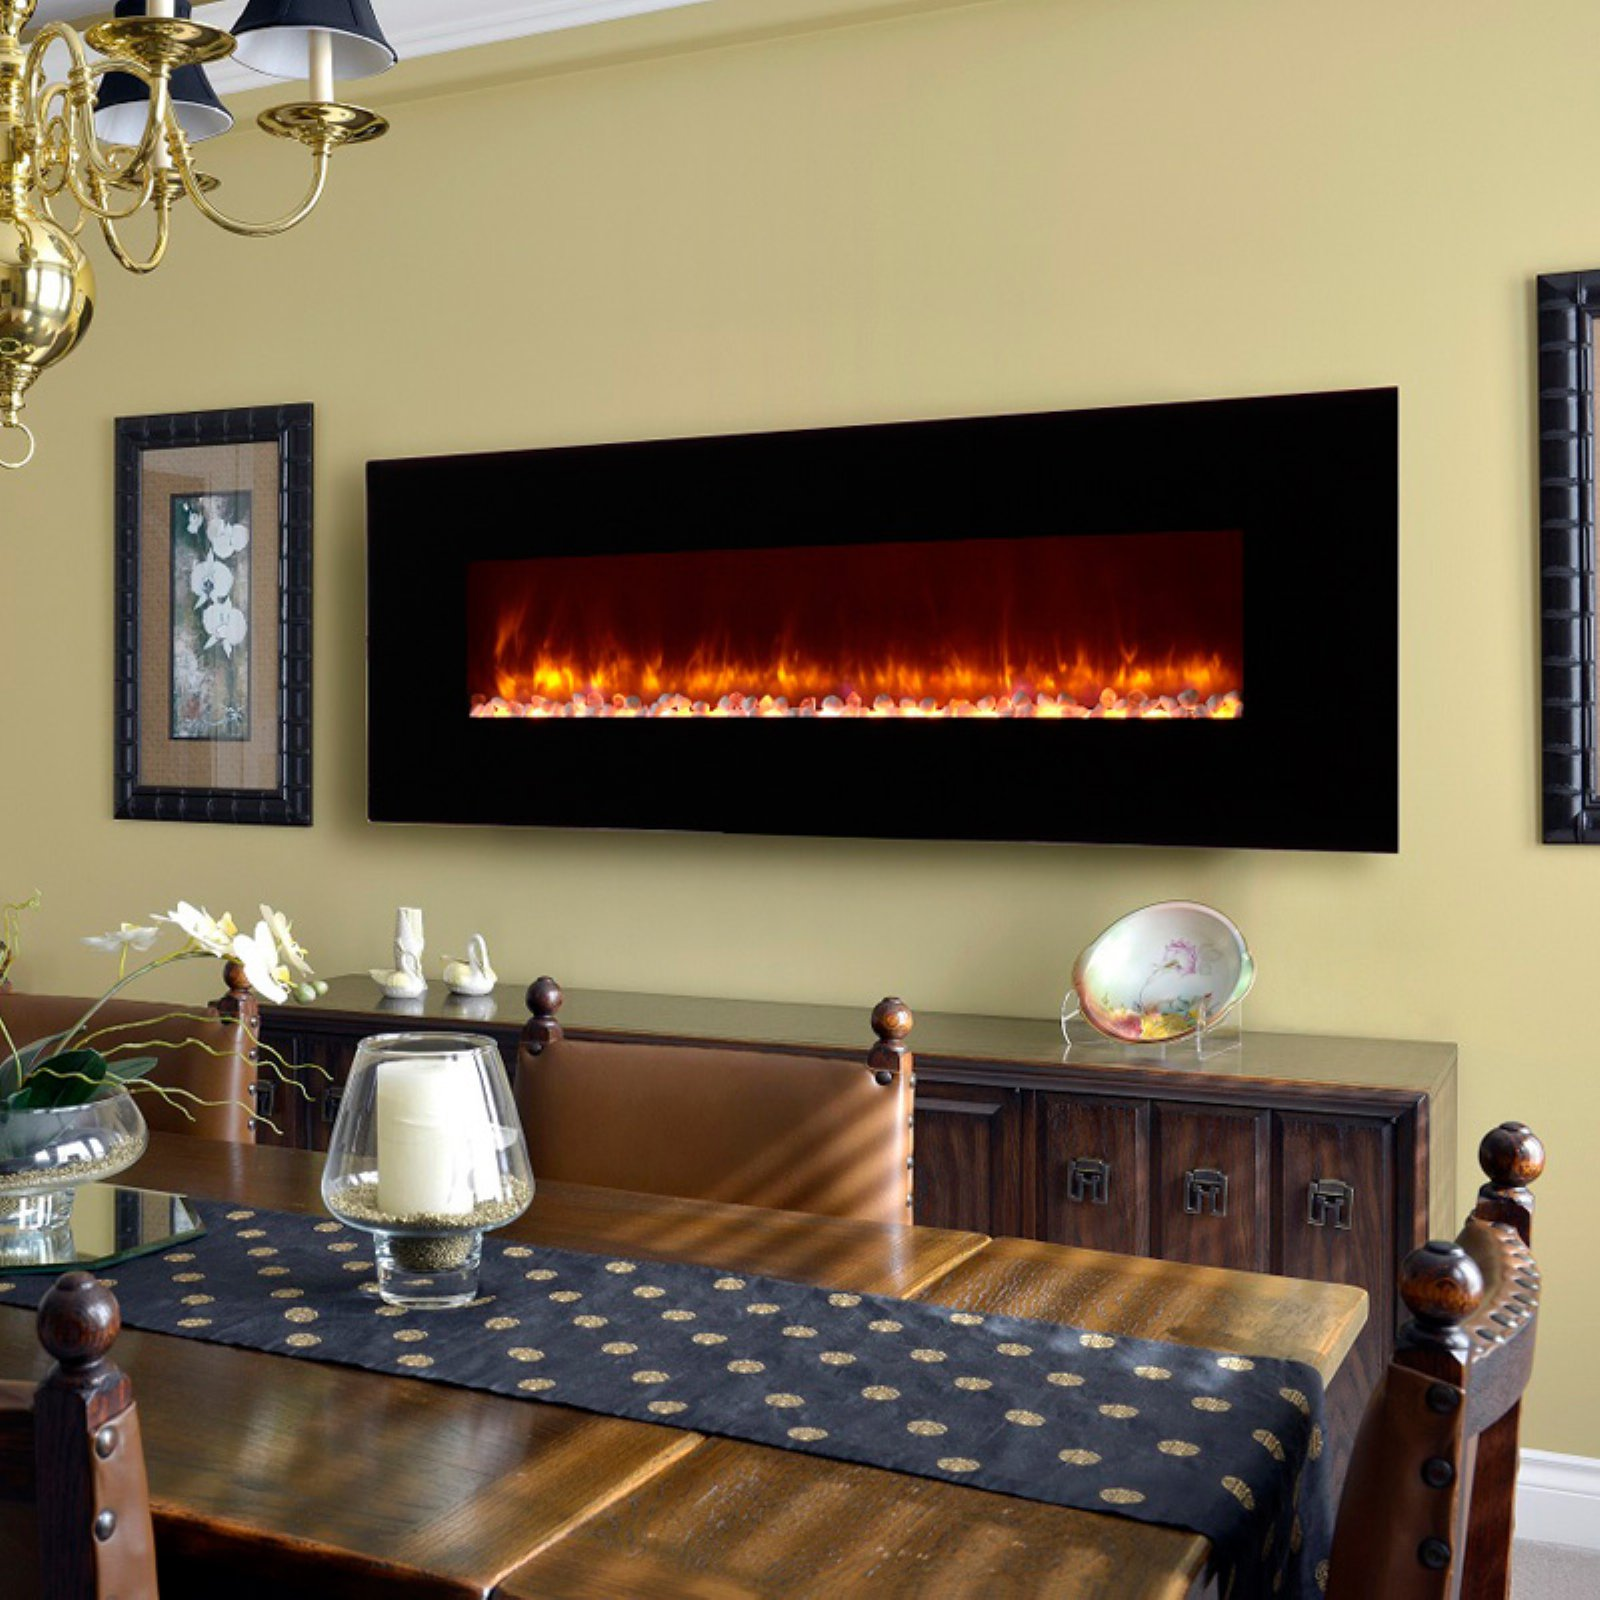 Dynasty Contemporary Electric Fireplace LED Wall Mount 70 in. by Dynasty Fireplaces